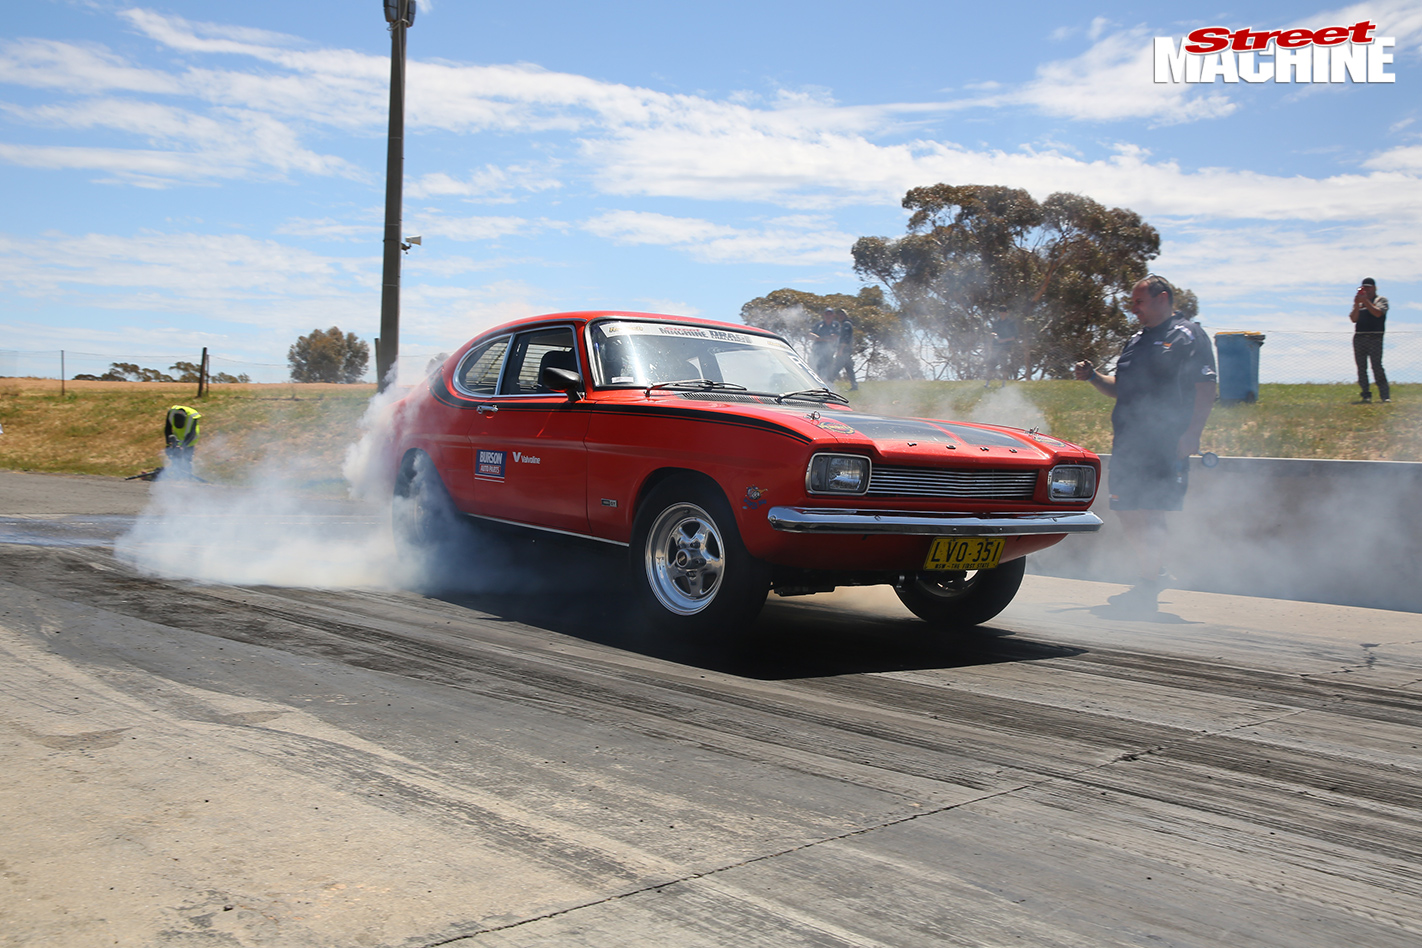 TURBO-LS-FORD-CAPRI-AND-TWIN-TURBO-LS-MITSUBISHI-EXPRESS-VAN-AT-DRAG-CHALLENGE-tyre